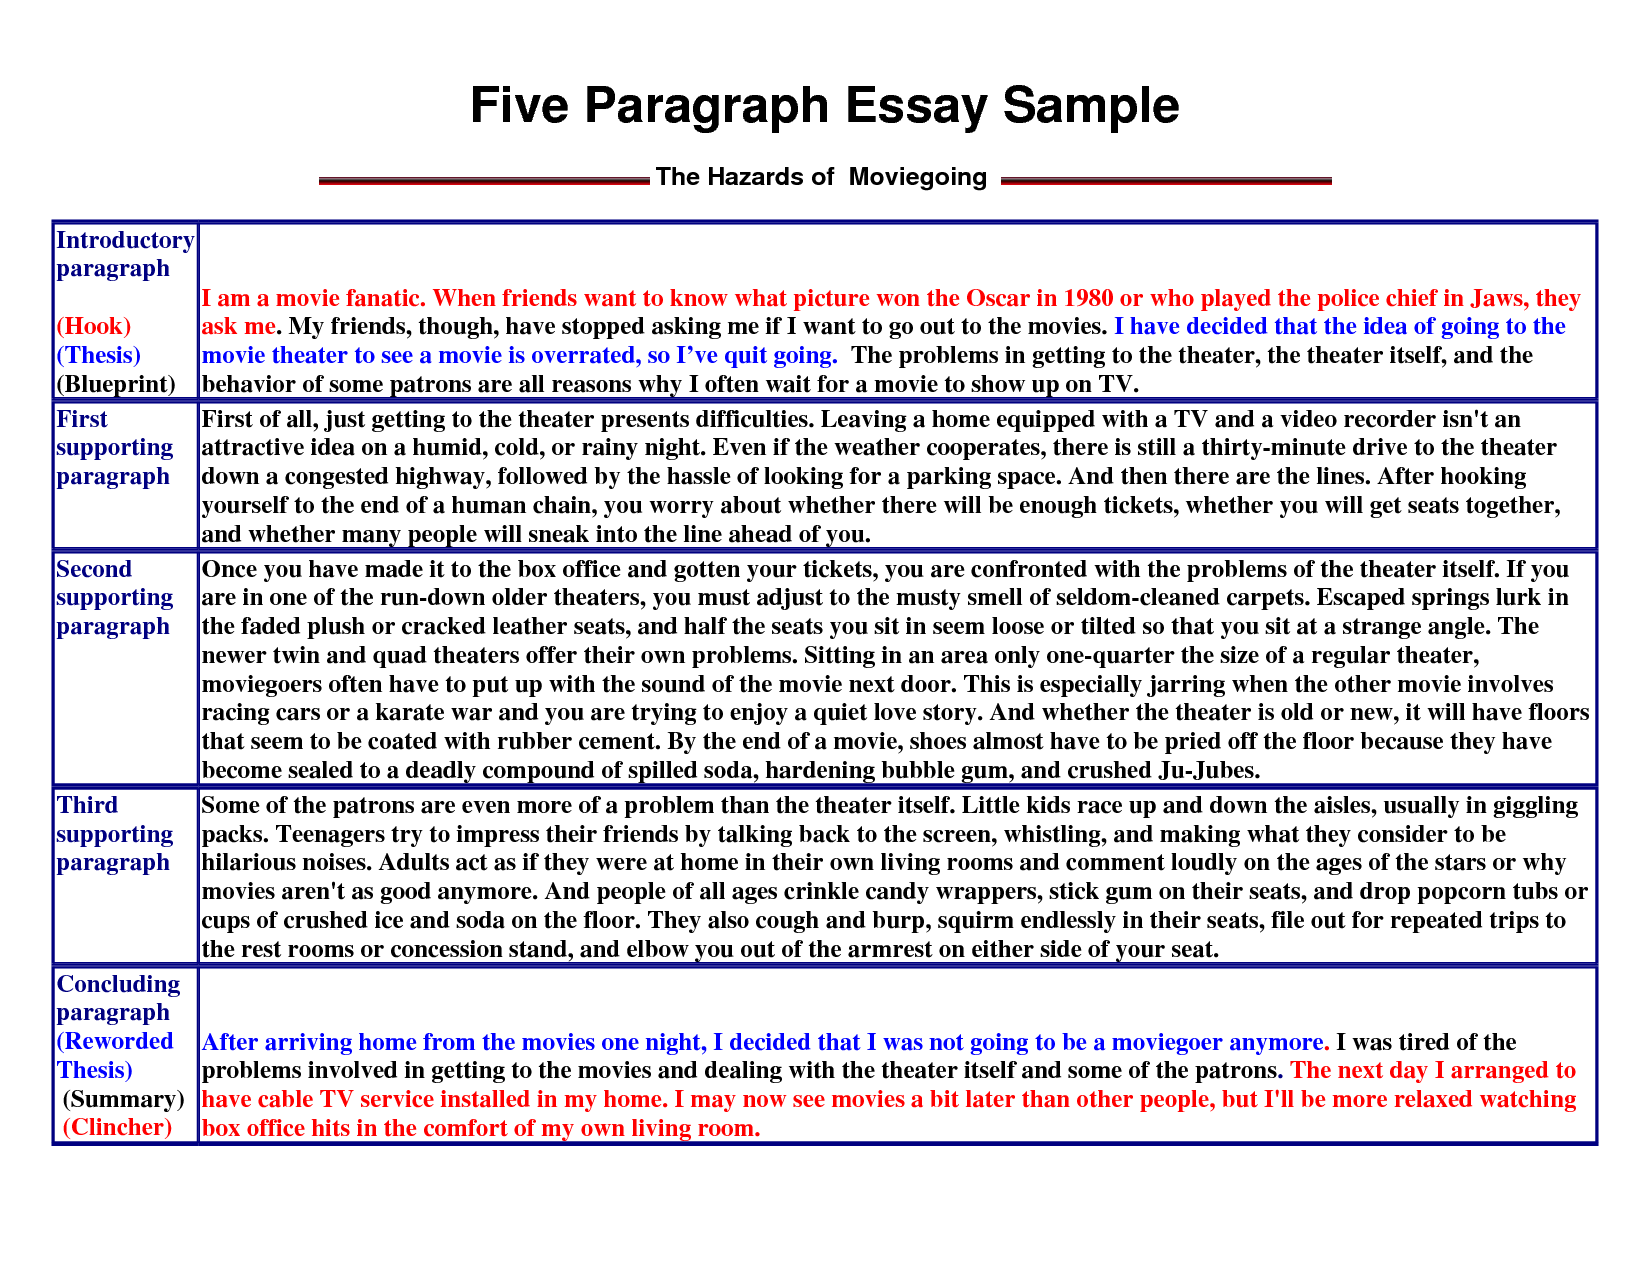 Could anyone please help me write a 3-5 page essay?